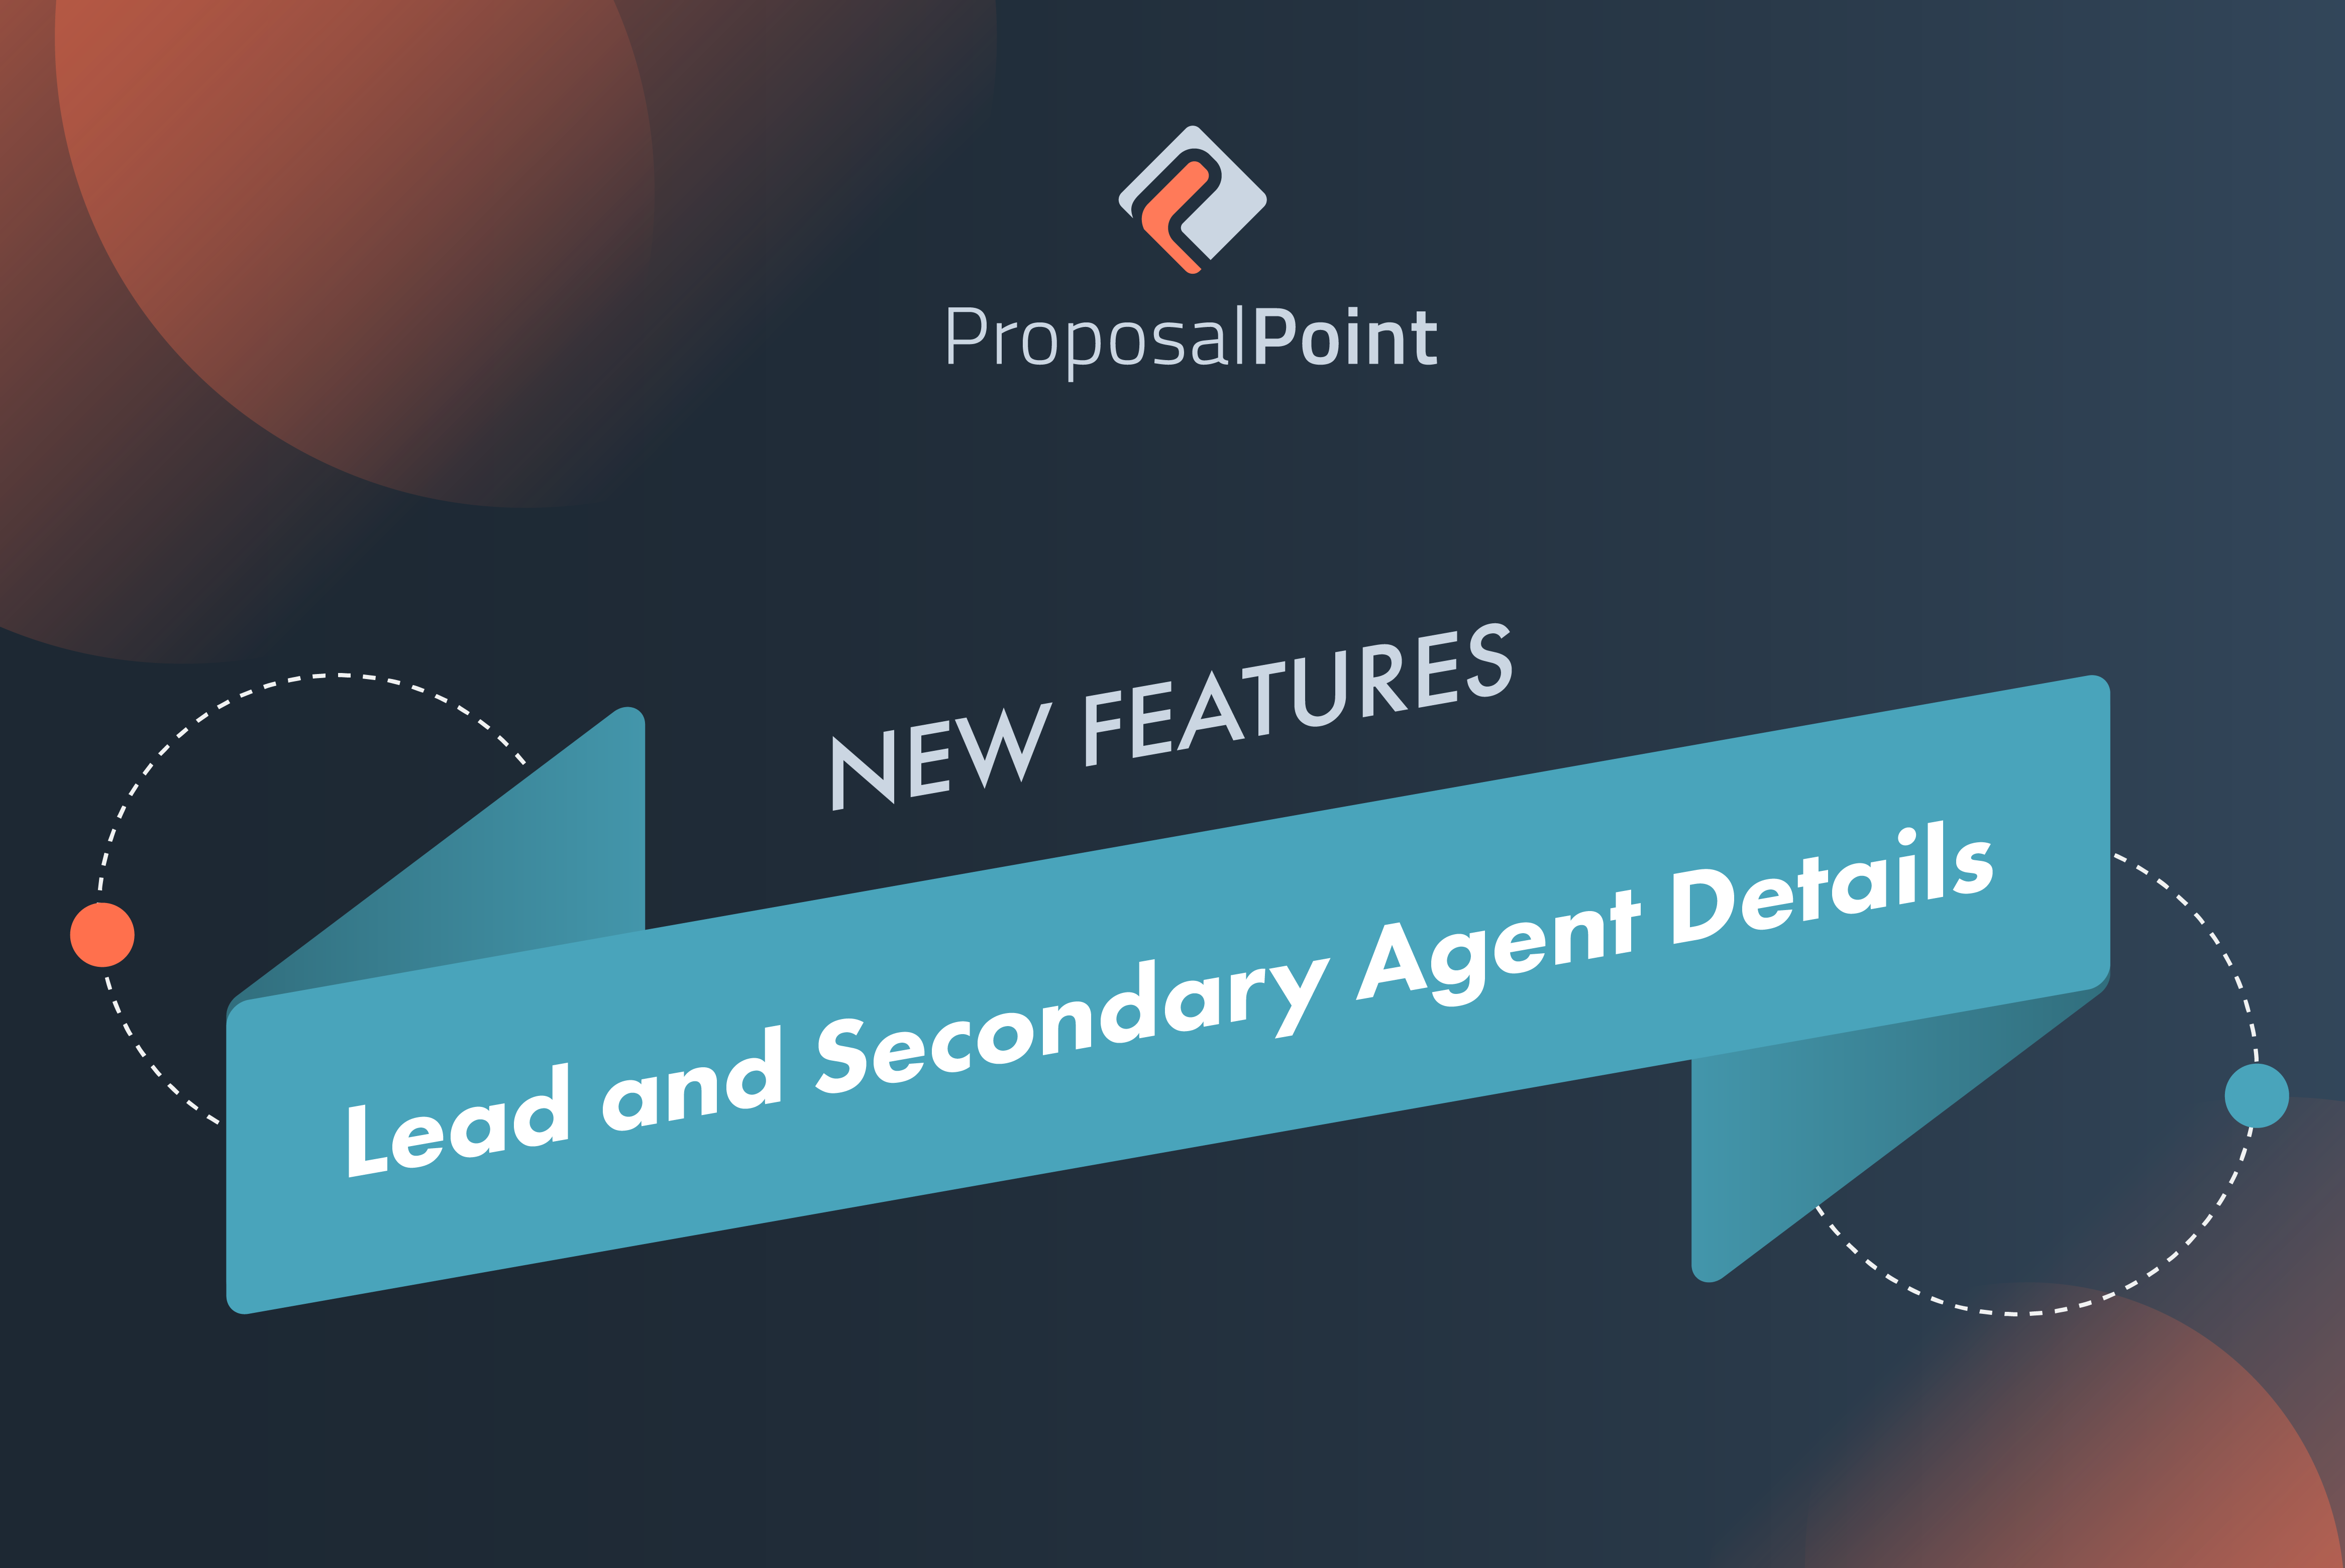 New Feature: Lead and Secondary Agent Details